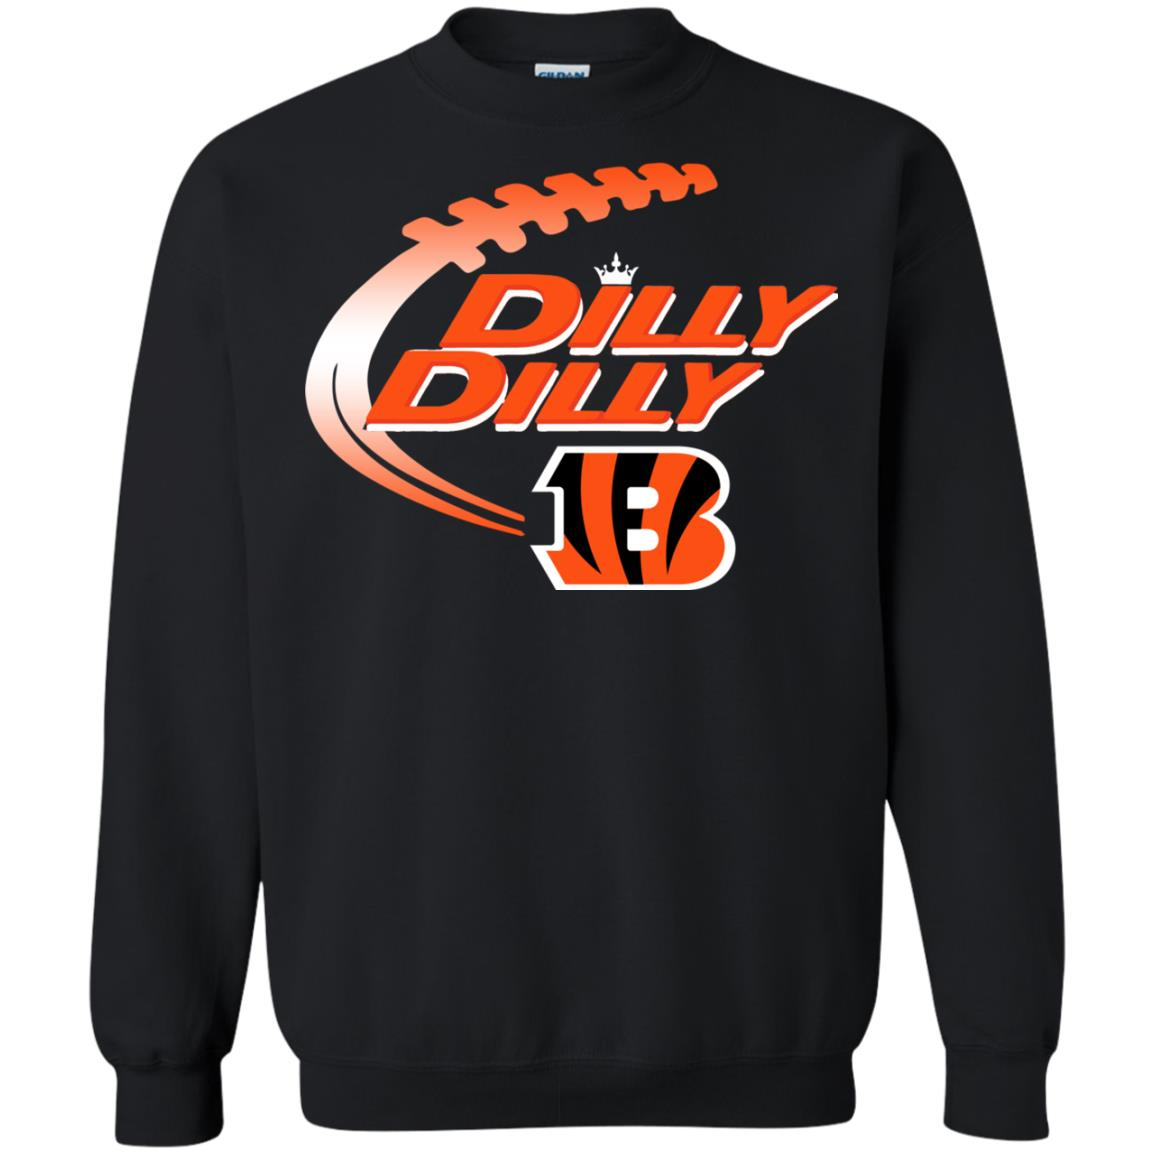 image 1864 - Dilly Dilly Cincinnati Bengals Shirt, Hoodie, Long Sleeve